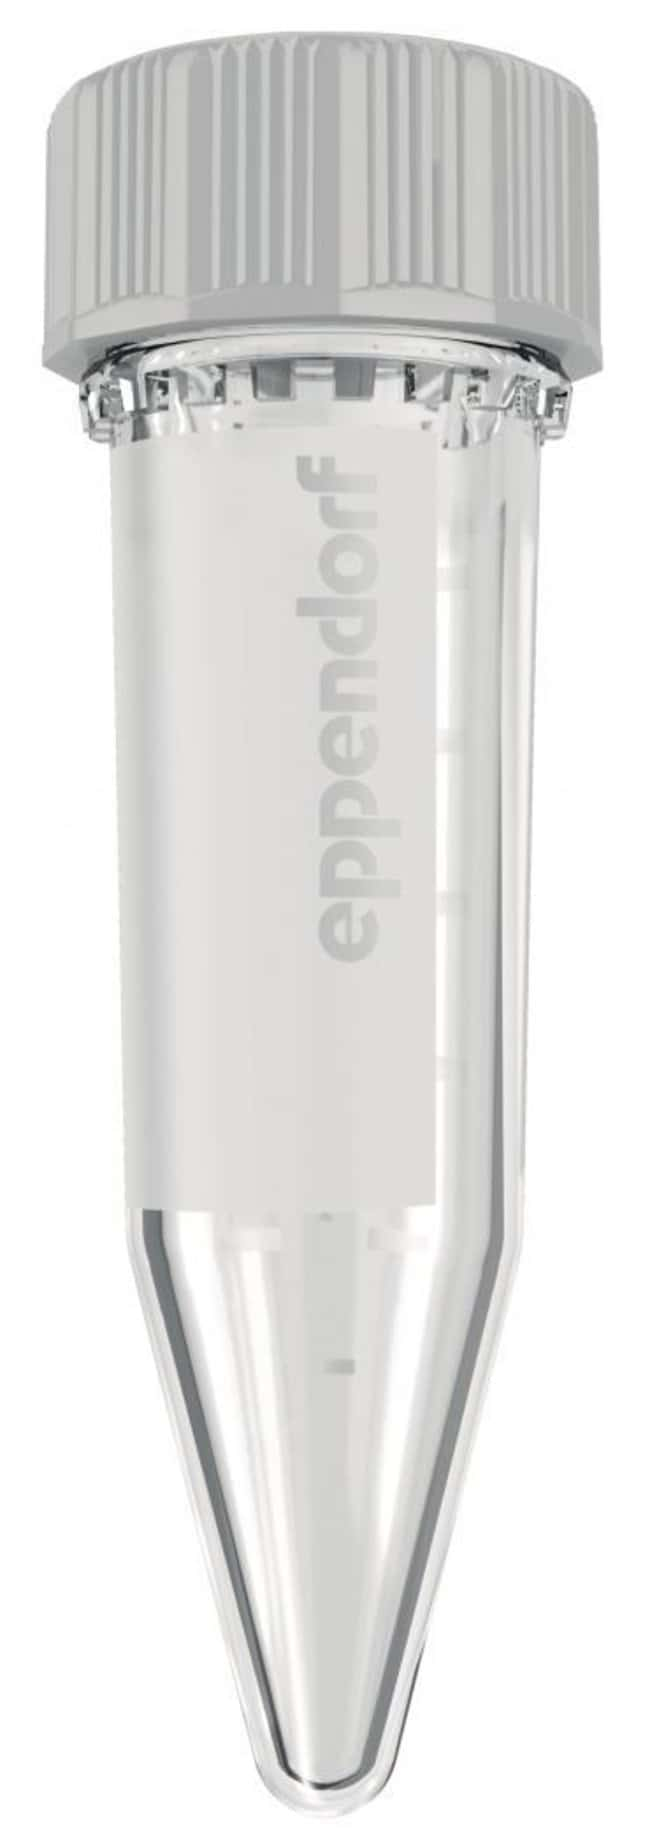 Eppendorf™Tubos Eppendorf ™ de 5.0ml con tapón de rosca Temperature Range (Metric): (-)86°C to 100°C; Color: Clear; Packaging: 200 tubes (2 bags x 100 tubes); Closure style: Screw top; Clean claims: PCR Clean Eppendorf™Tubos Eppendorf ™ de 5.0ml con tapón de rosca